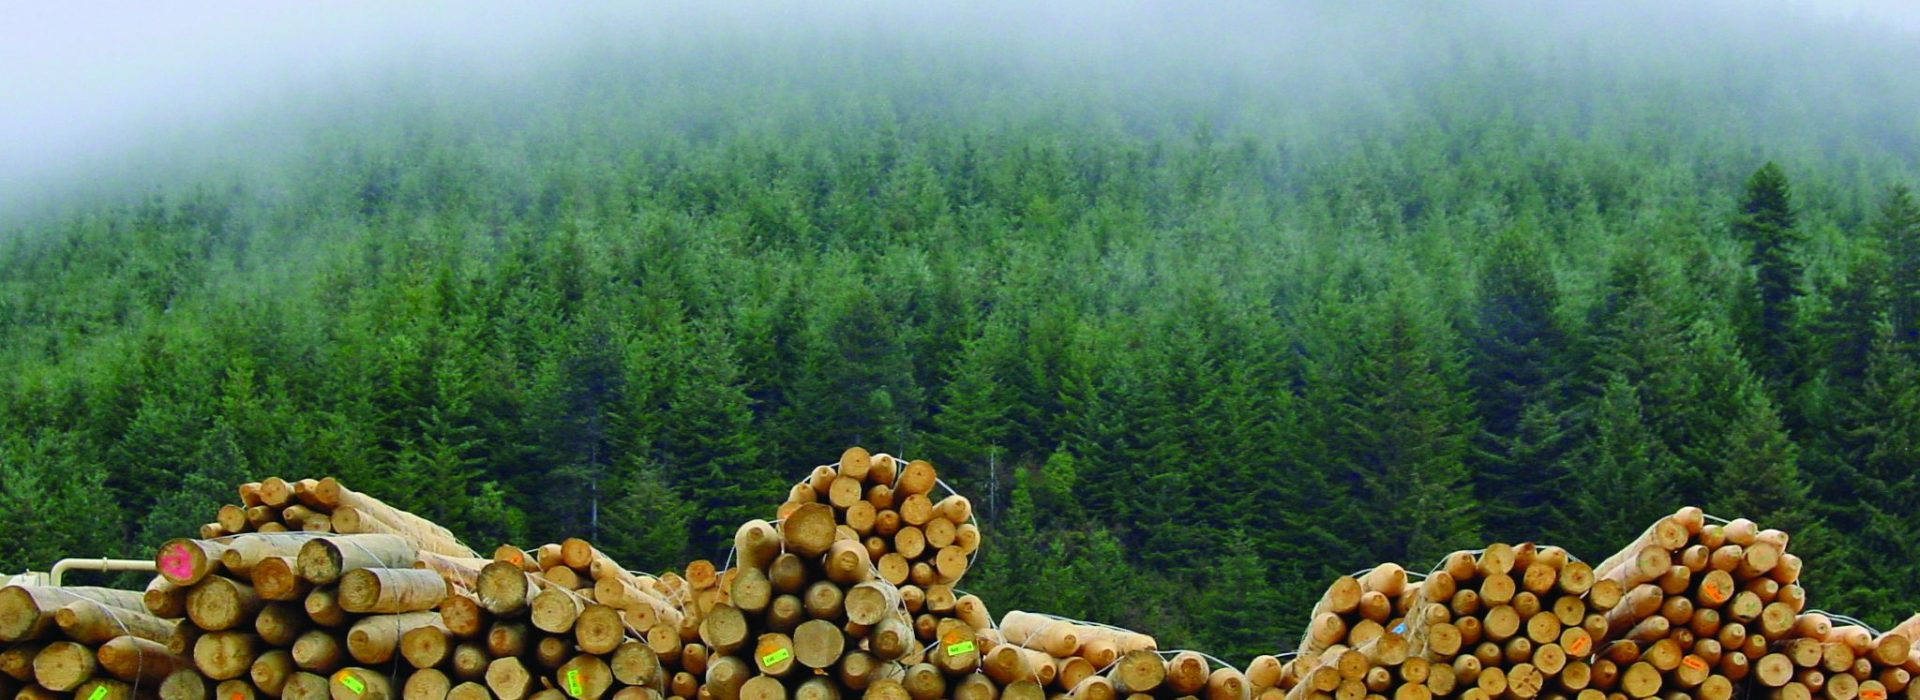 Logs and Forest